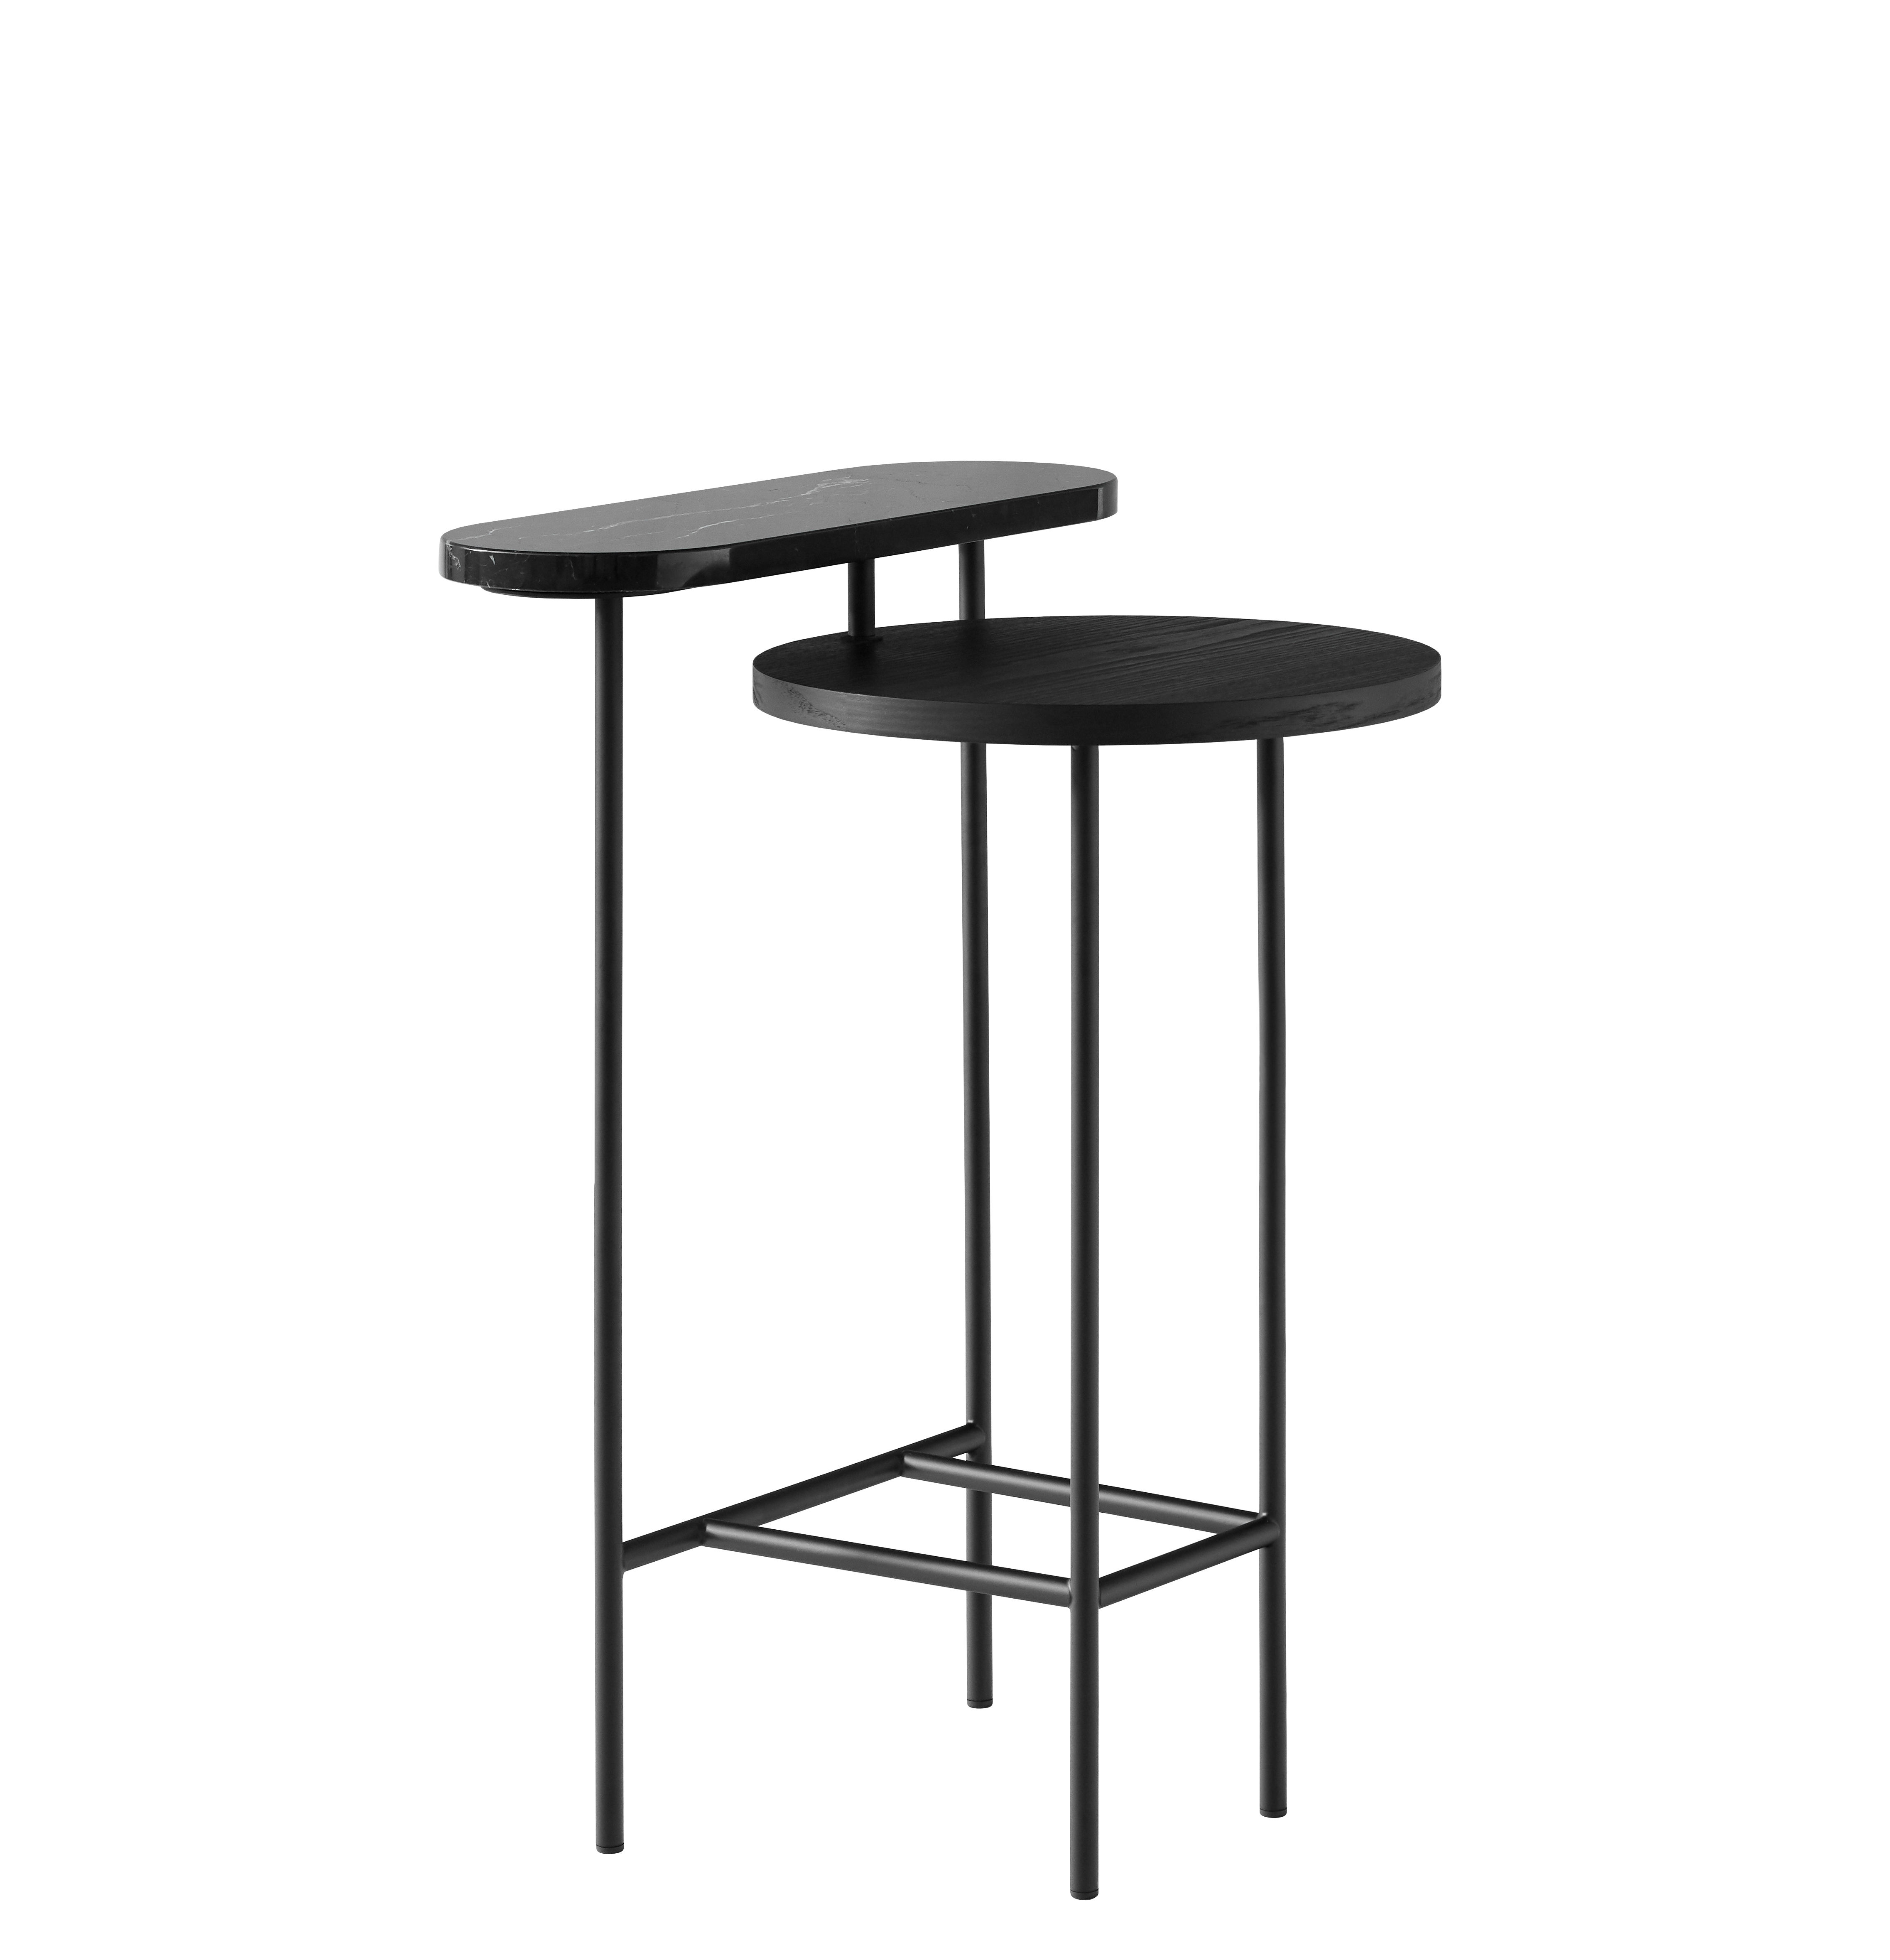 Furniture - Coffee Tables - Palette JH26 Small table - / 2 tops by &tradition - Black - Epoxy lacquered steel, Lacquered ash, Marble